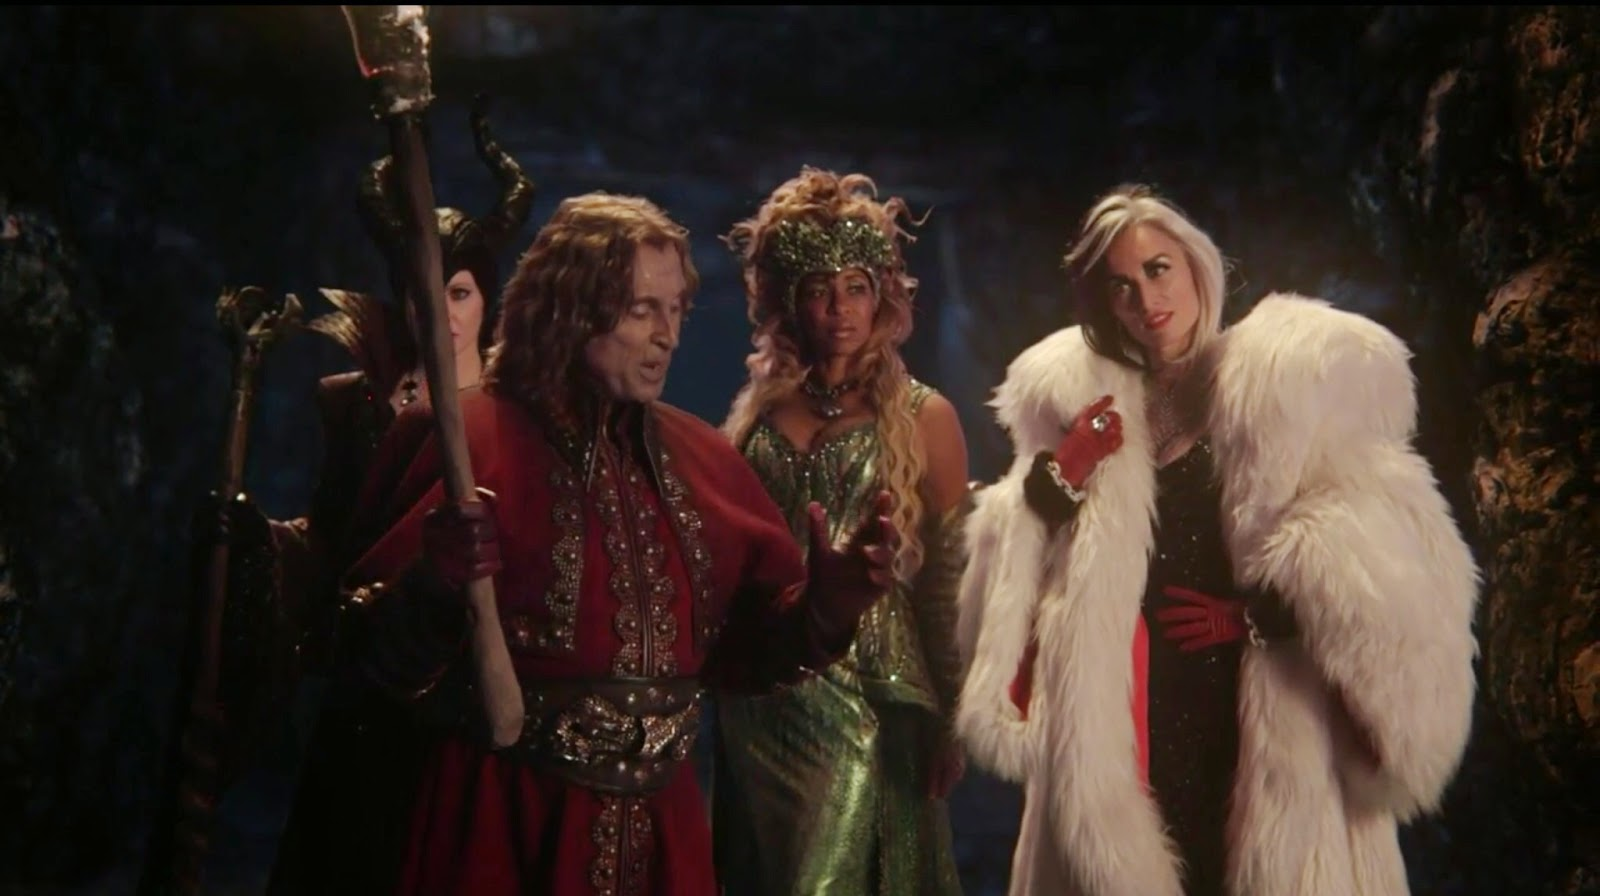 review_once-upon-time_s04e12_darkness-of-the-edge-of-town_queens-of-darkness_rumpelstiltskin